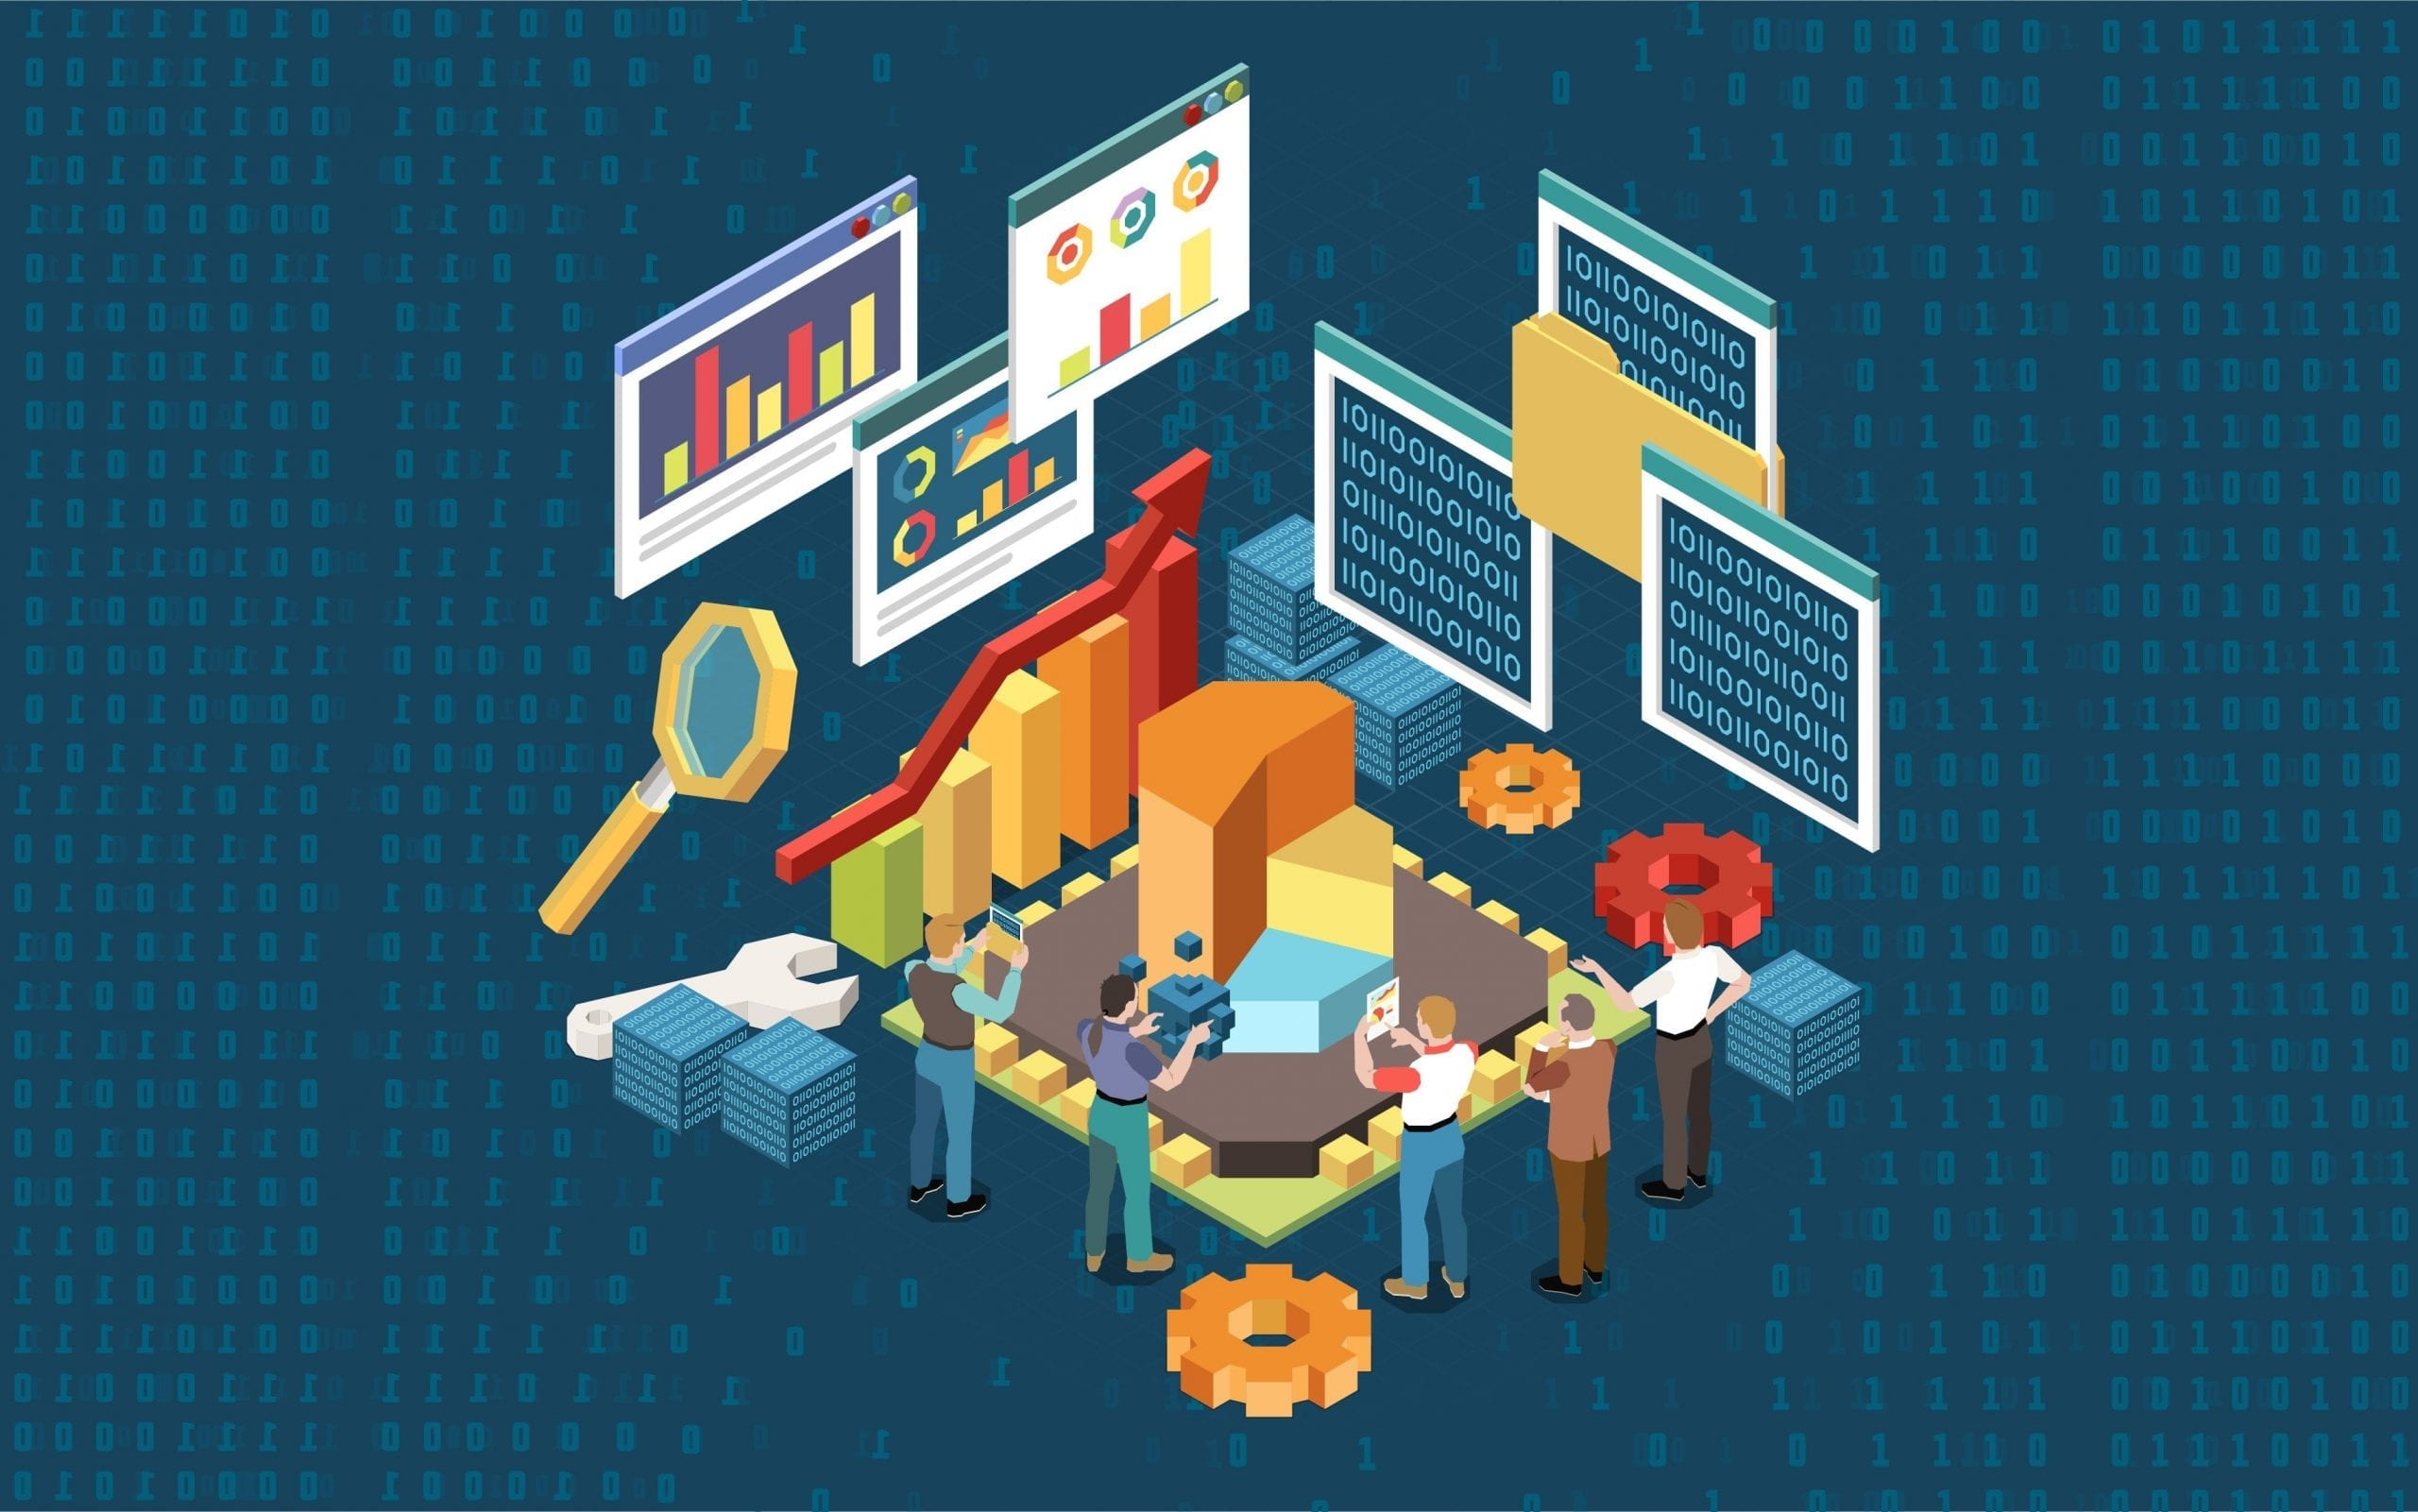 Comment on Data Science Courses in India by Charry